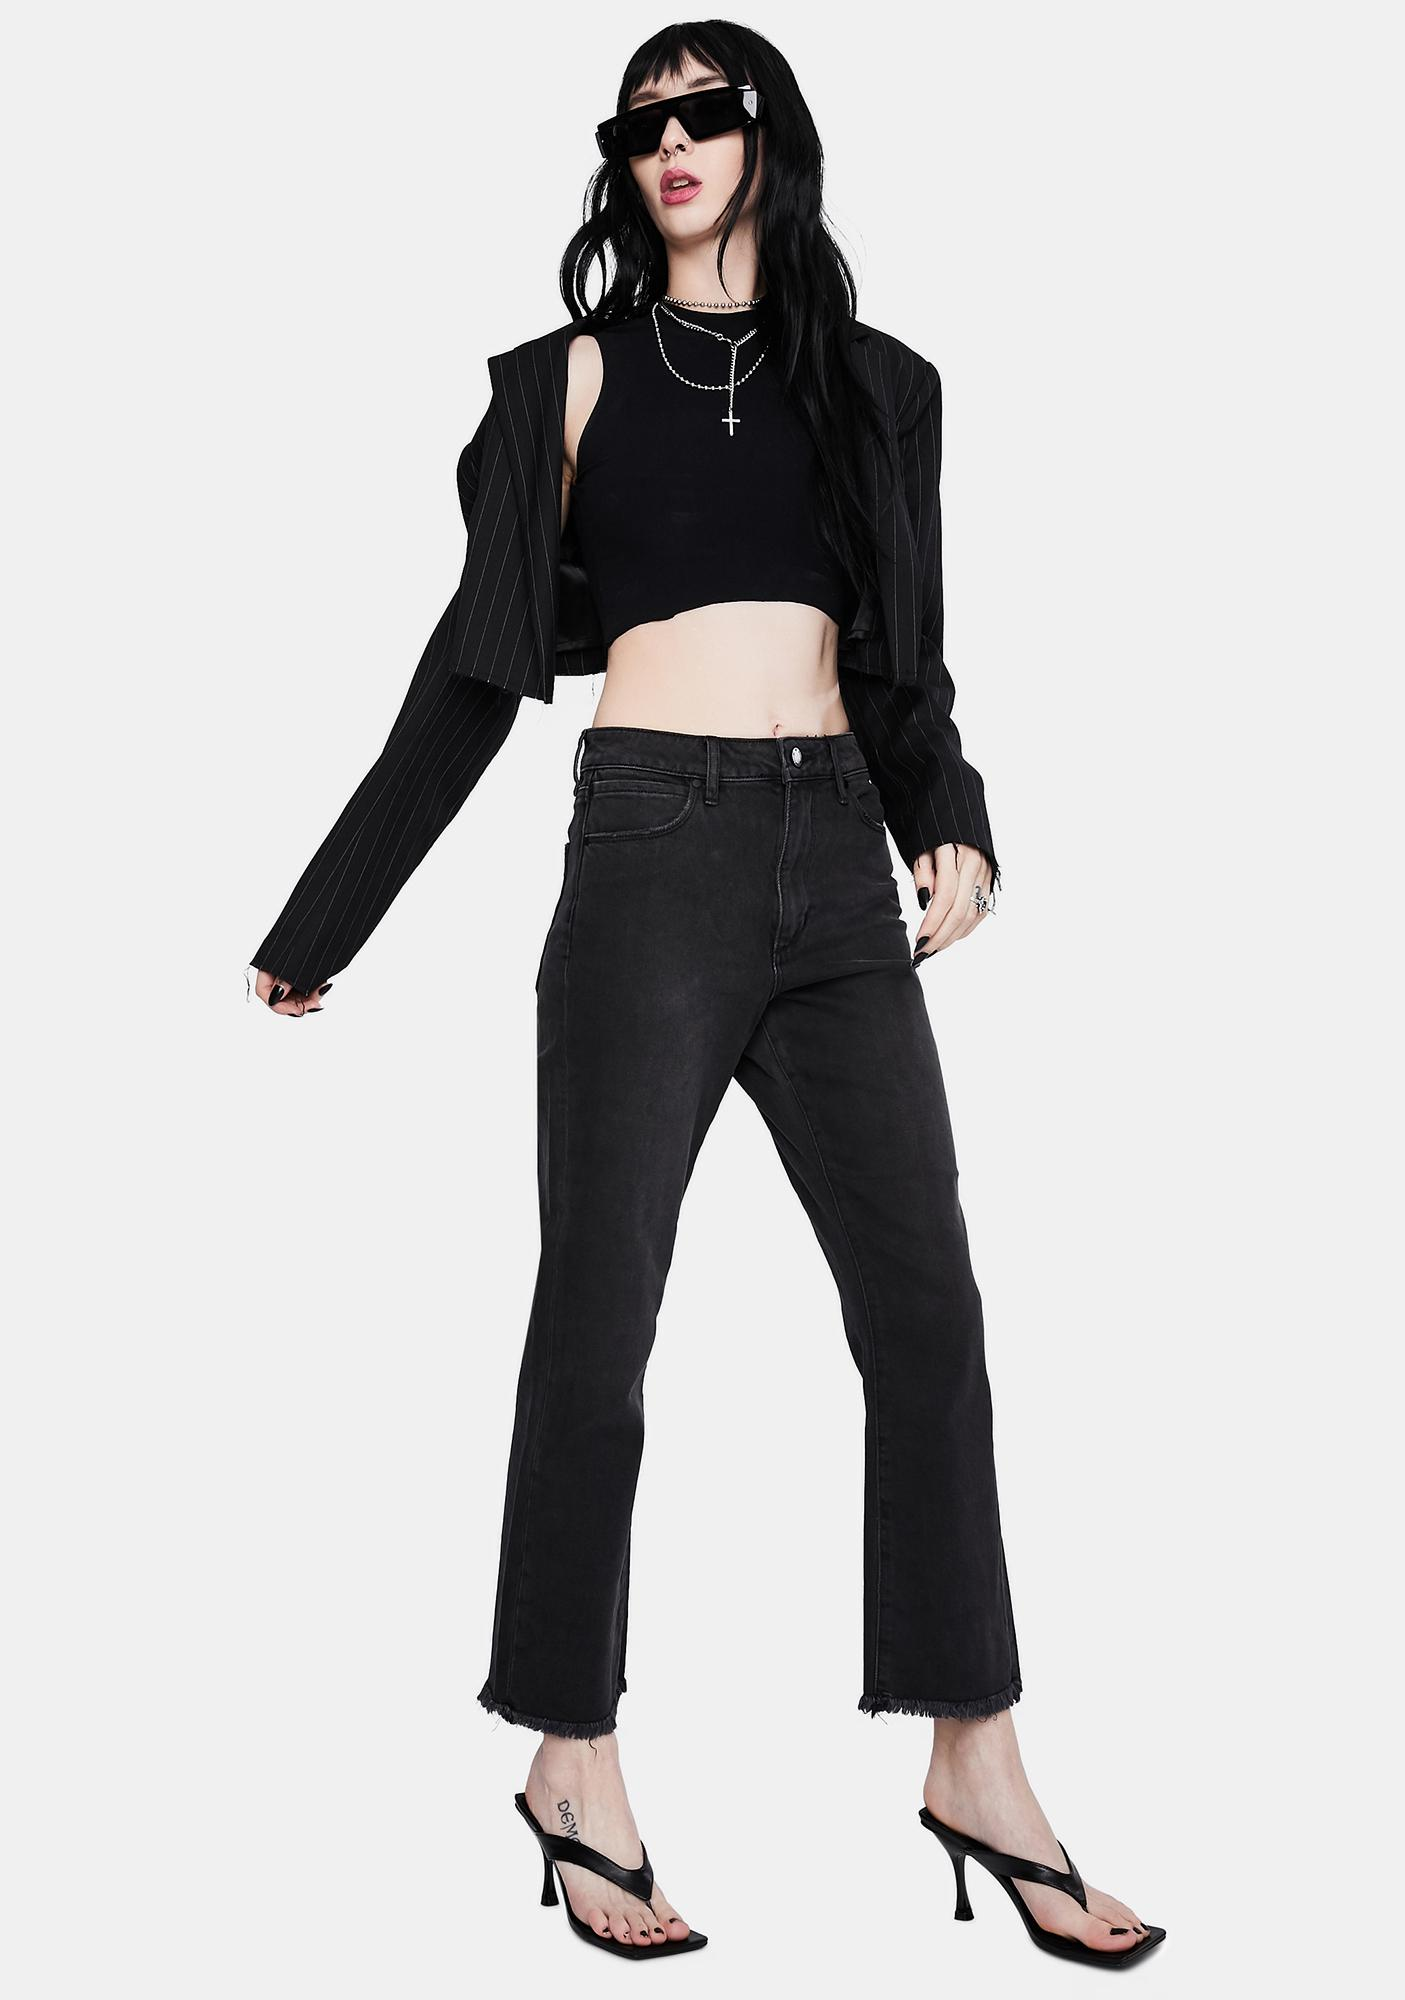 Articles of Society Kate High Waisted Straight Crop Jeans